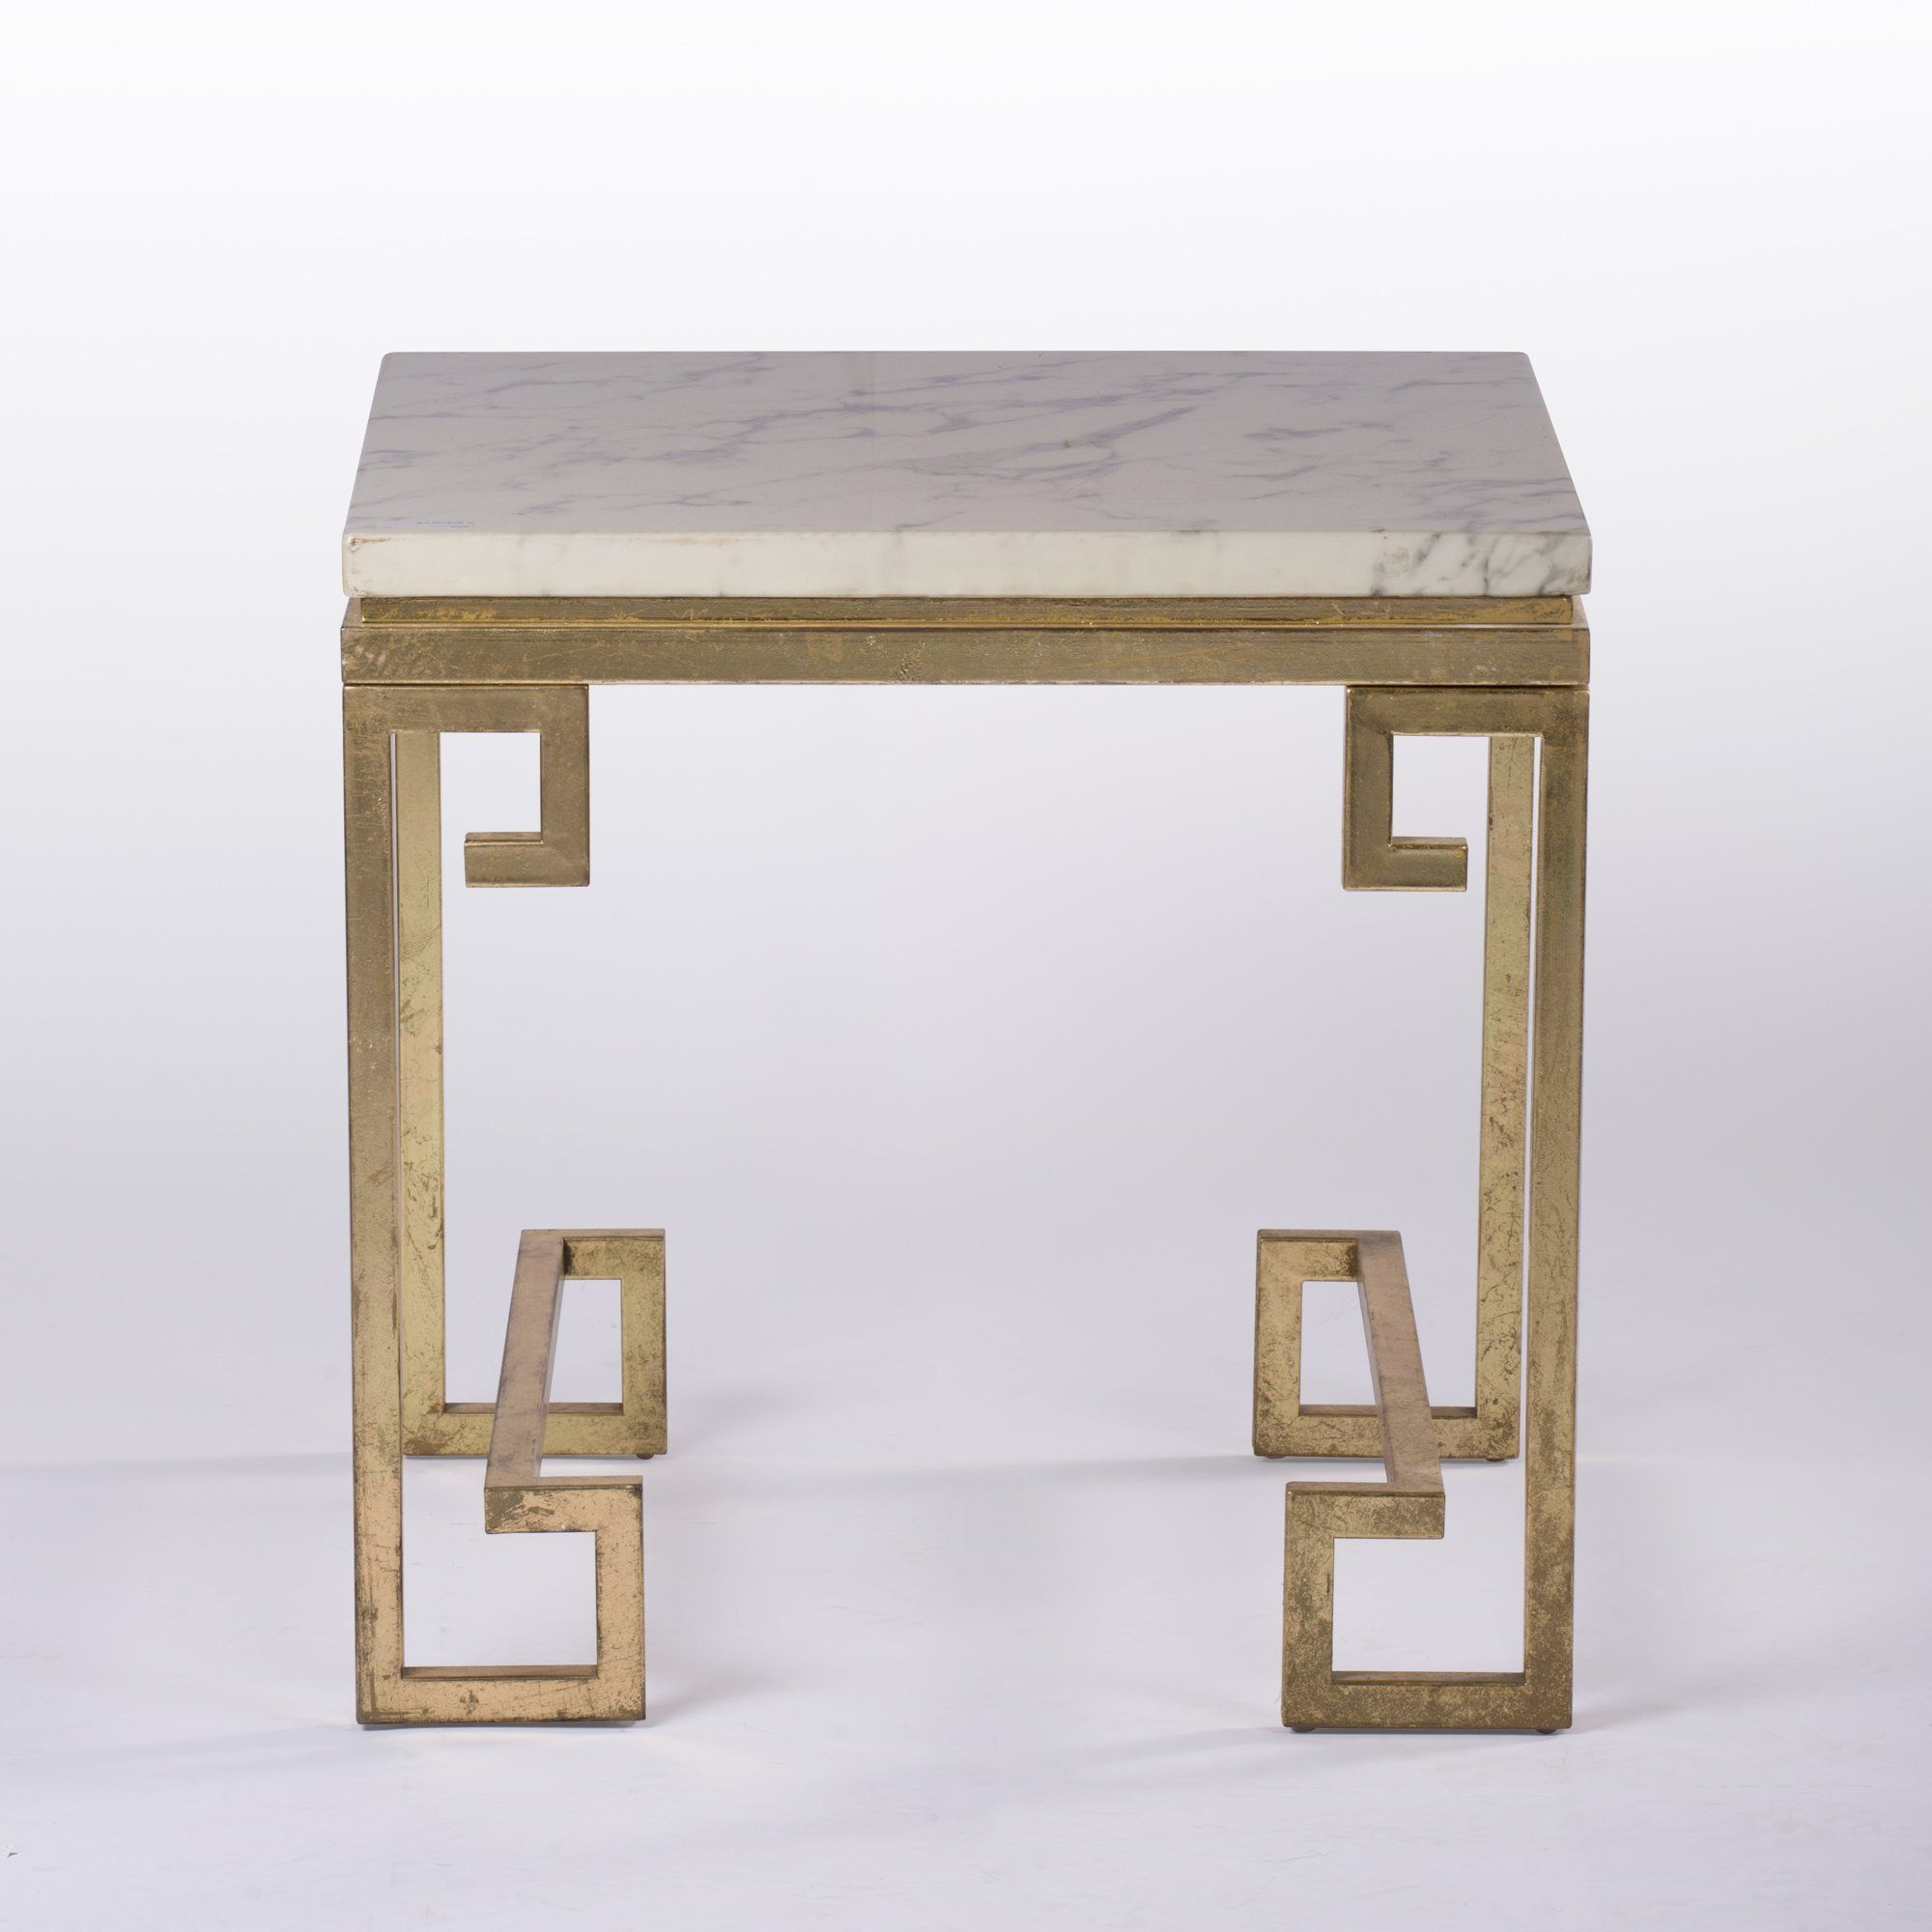 Gold Greek Key Style Marble Coffee Table Marble Coffee Table